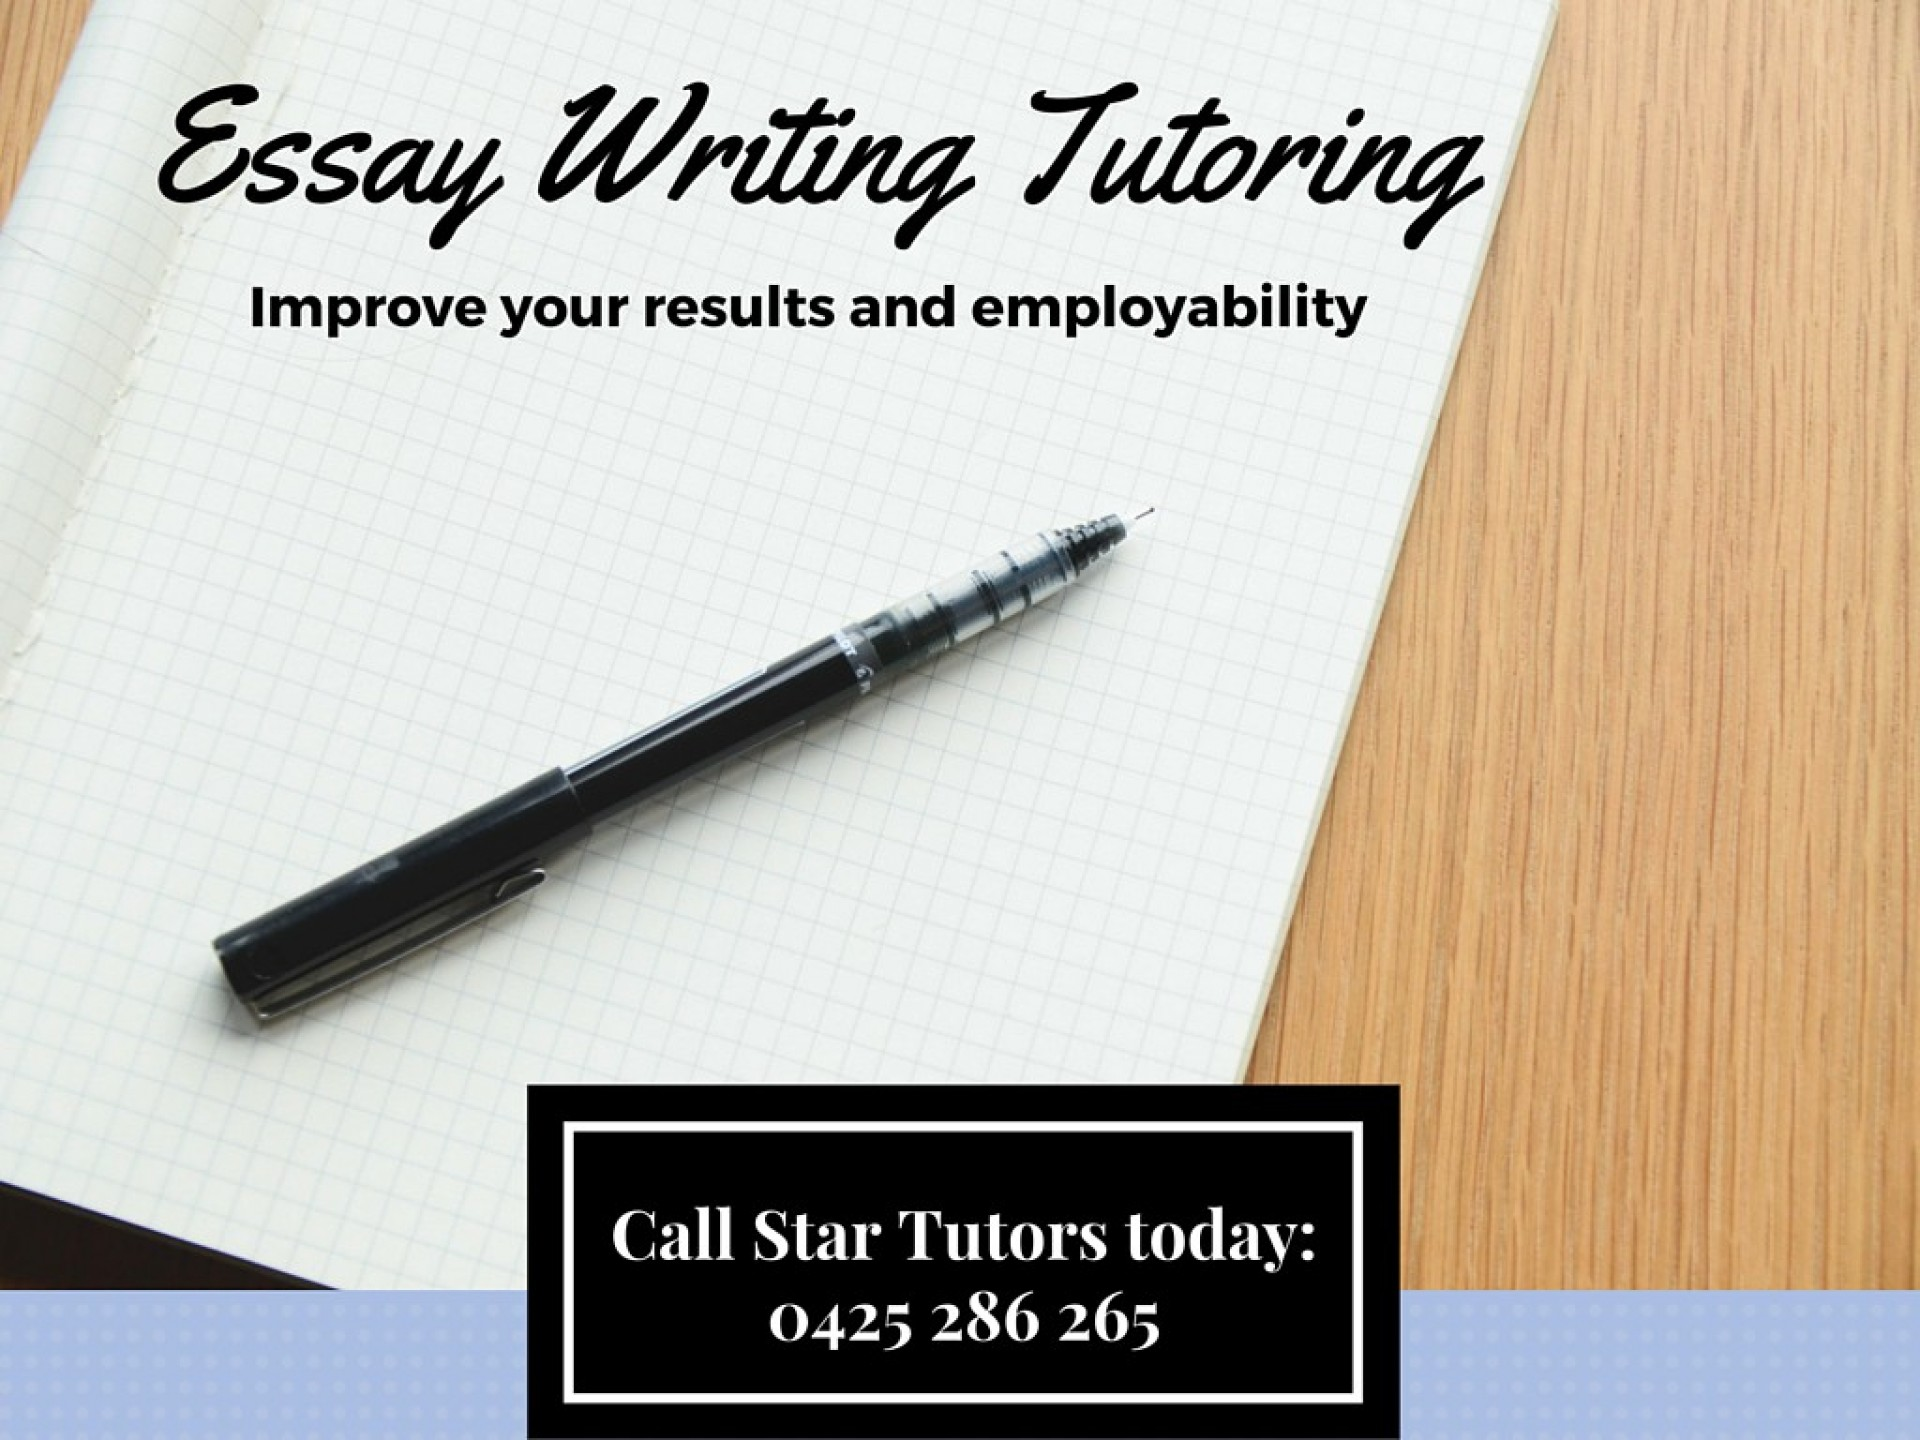 001 Tutoring Essay Writing Example For Improved Results Best Tutorslbourne Tutor Wollongong Sydney Toronto Tutorial Pdf Jobs Free Near Awesome Austin Tx 1920